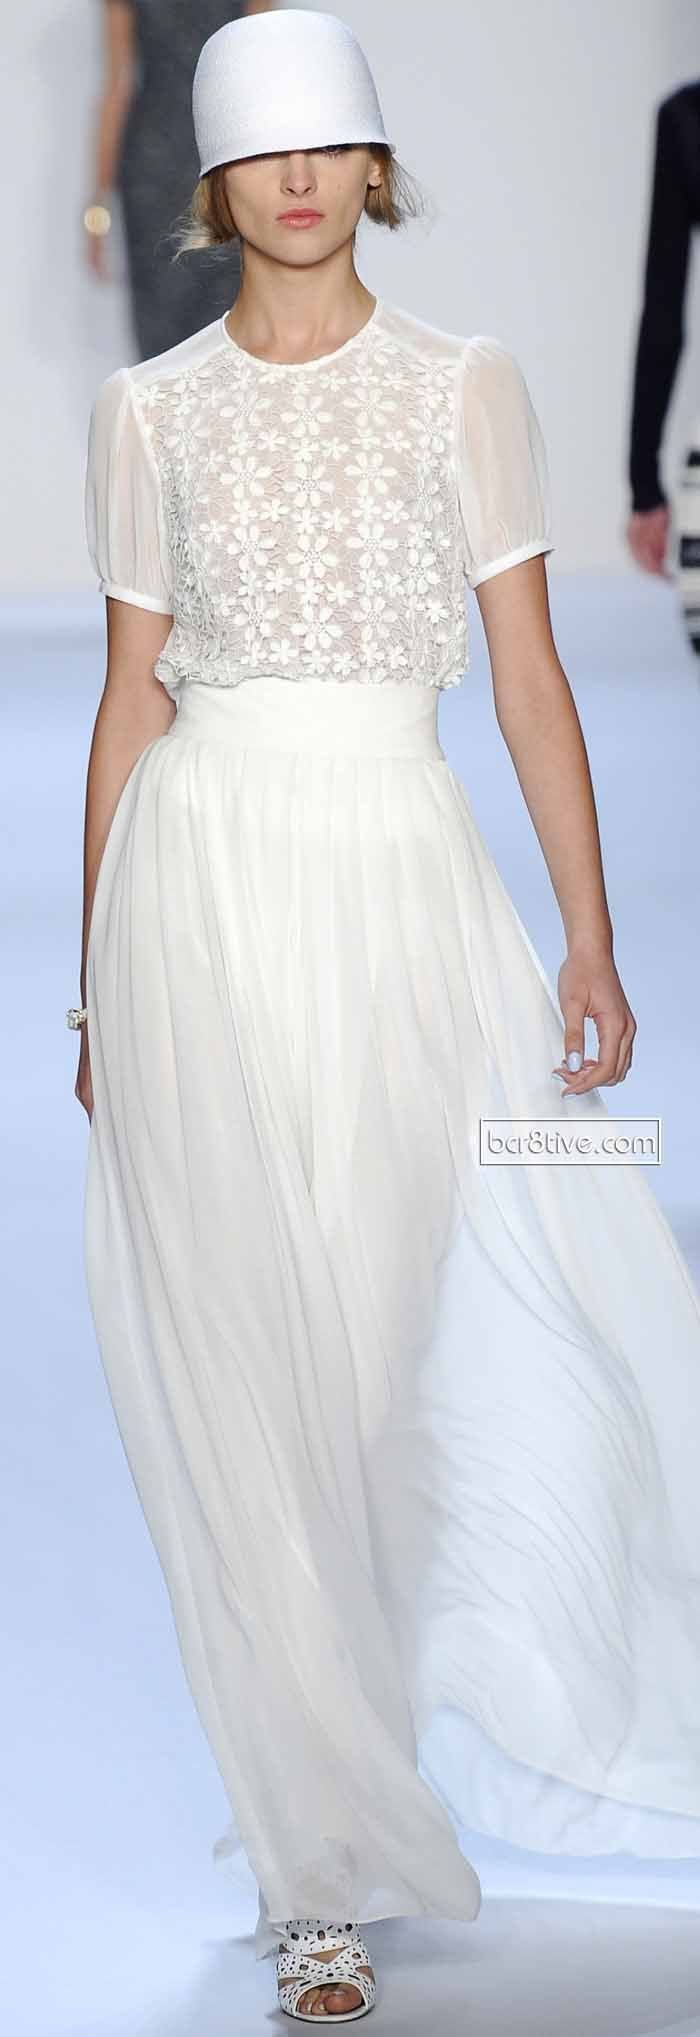 Badgley mischka wedding dress   best Designer Badgley Mischka images on Pinterest  Badgley